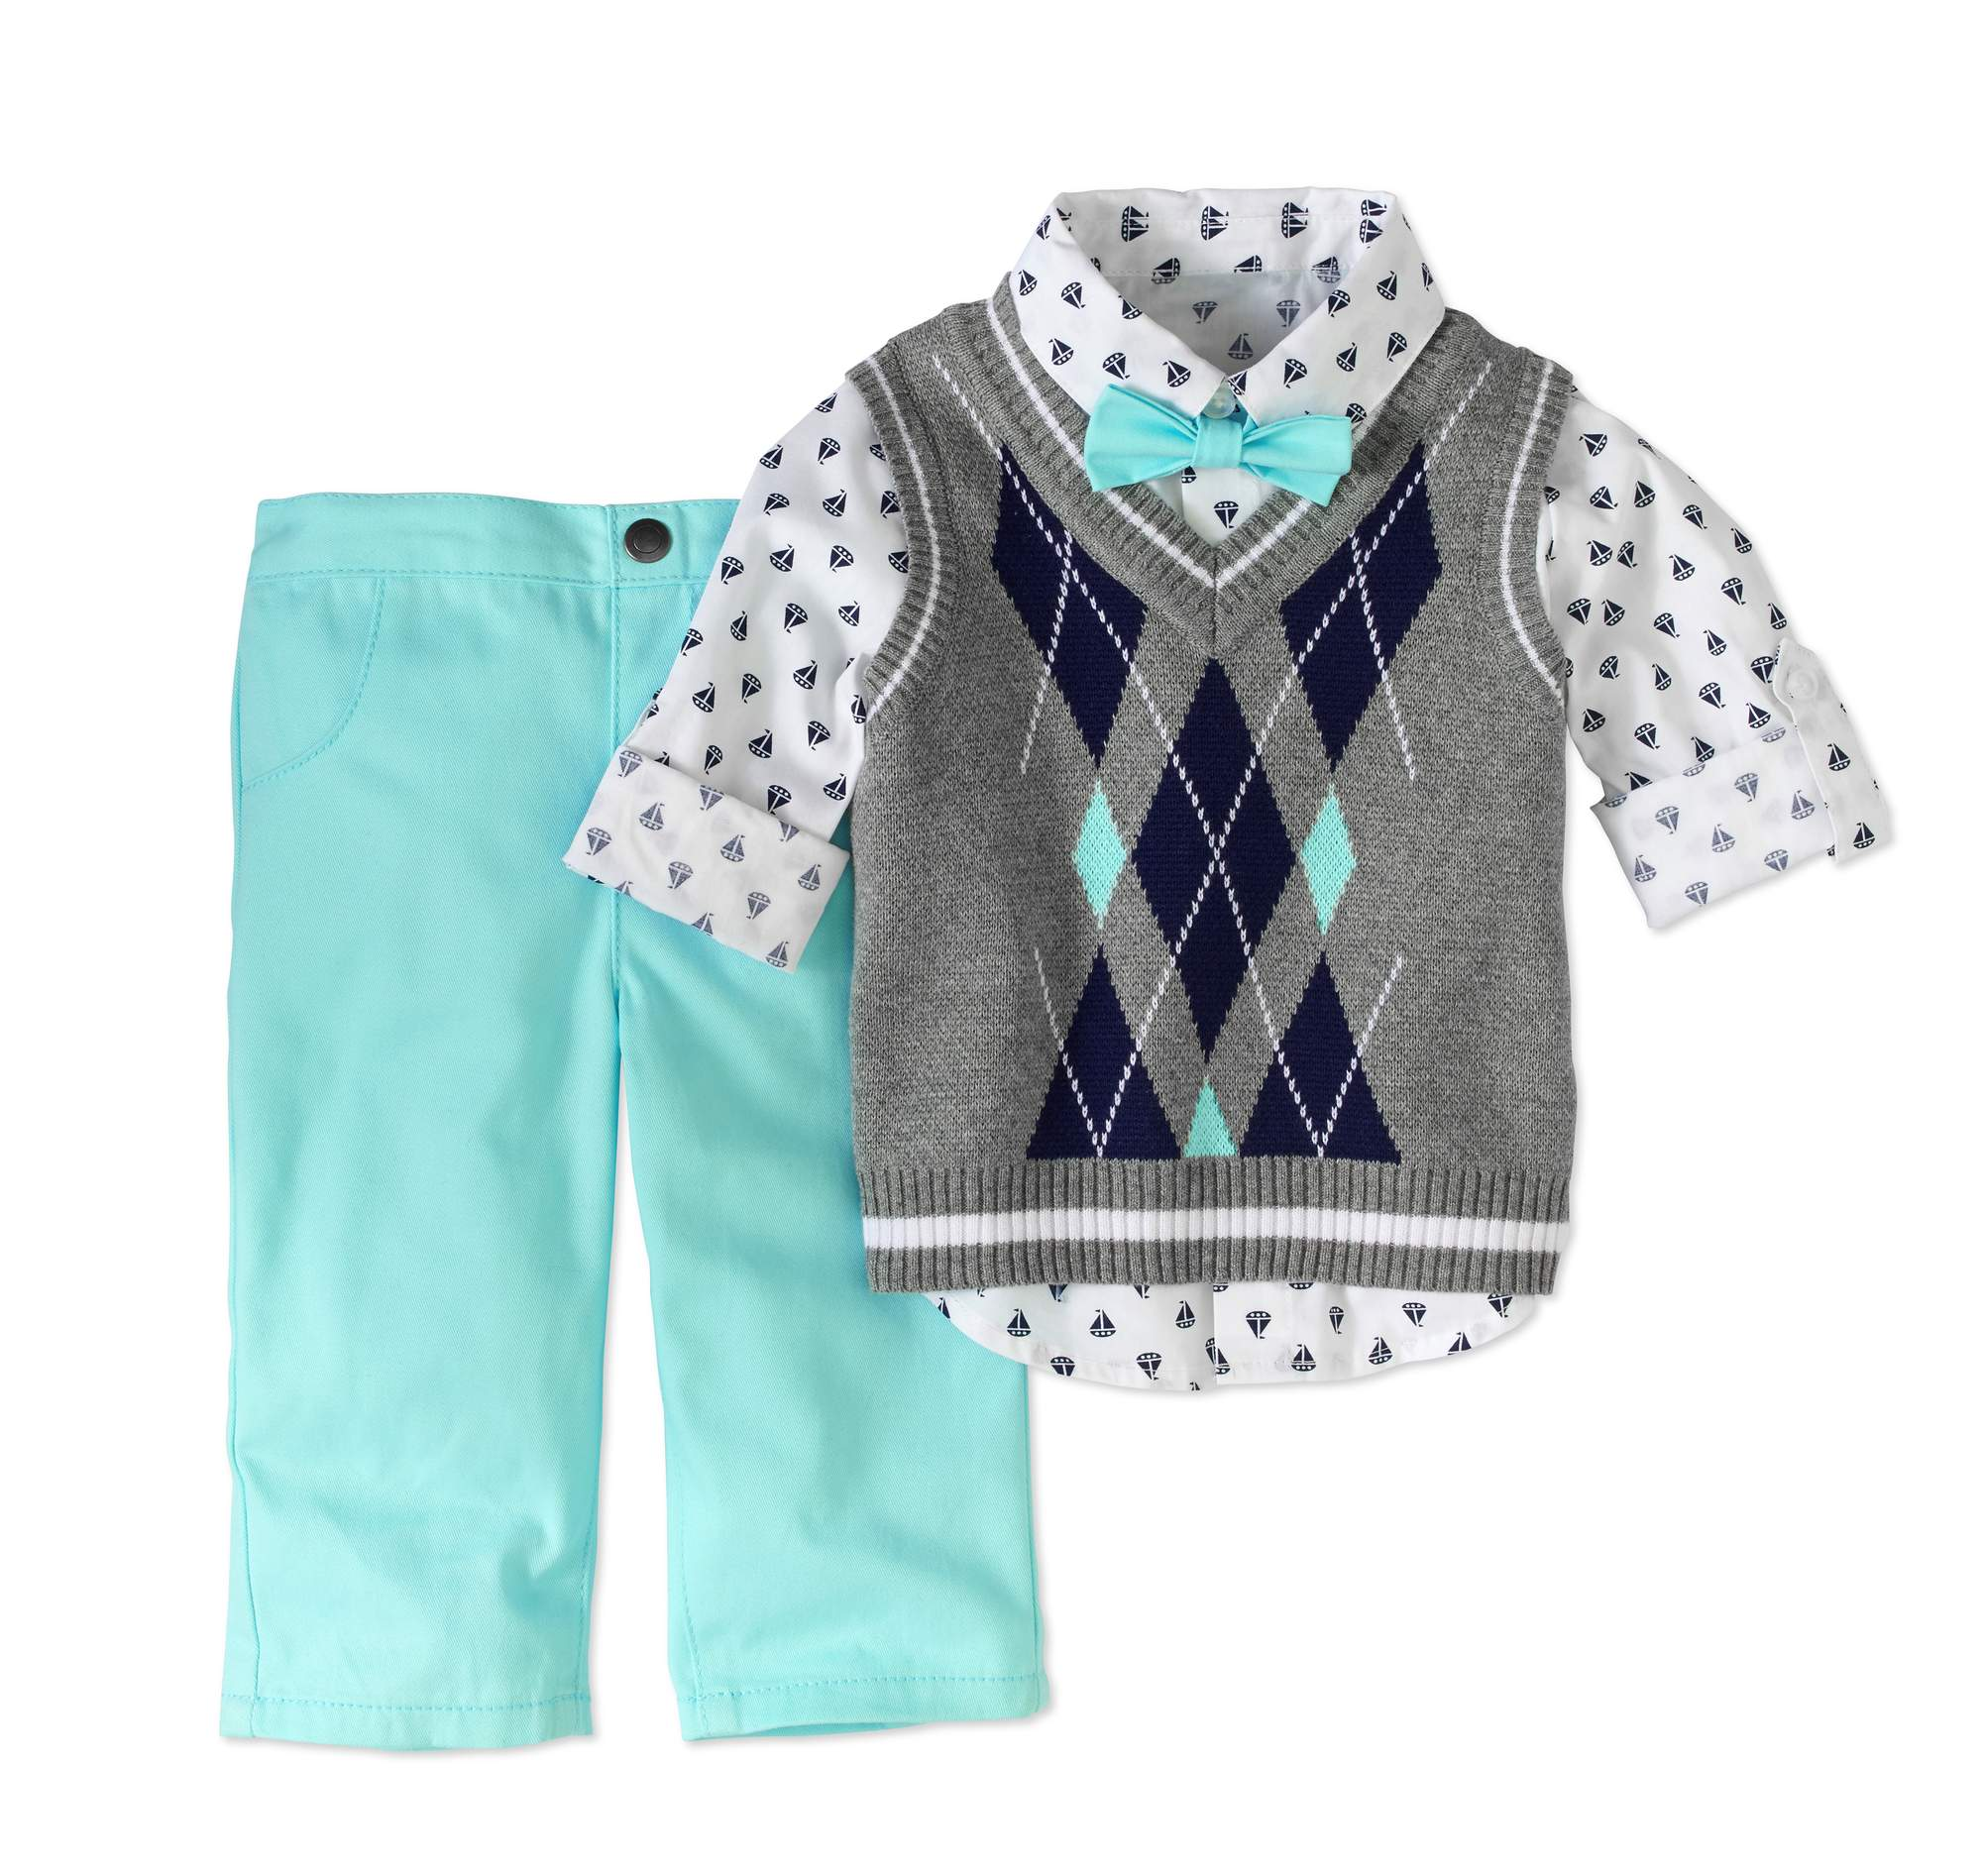 Save $$$ and get the best Clothing & Accessories prices with Slickdeals. From Amazon, eBay, JomaShop, Ashford, Macy's, Groupon, Costco Wholesale, Rakuten, and more, get the latest discounts, coupons, sales and shipping offers.